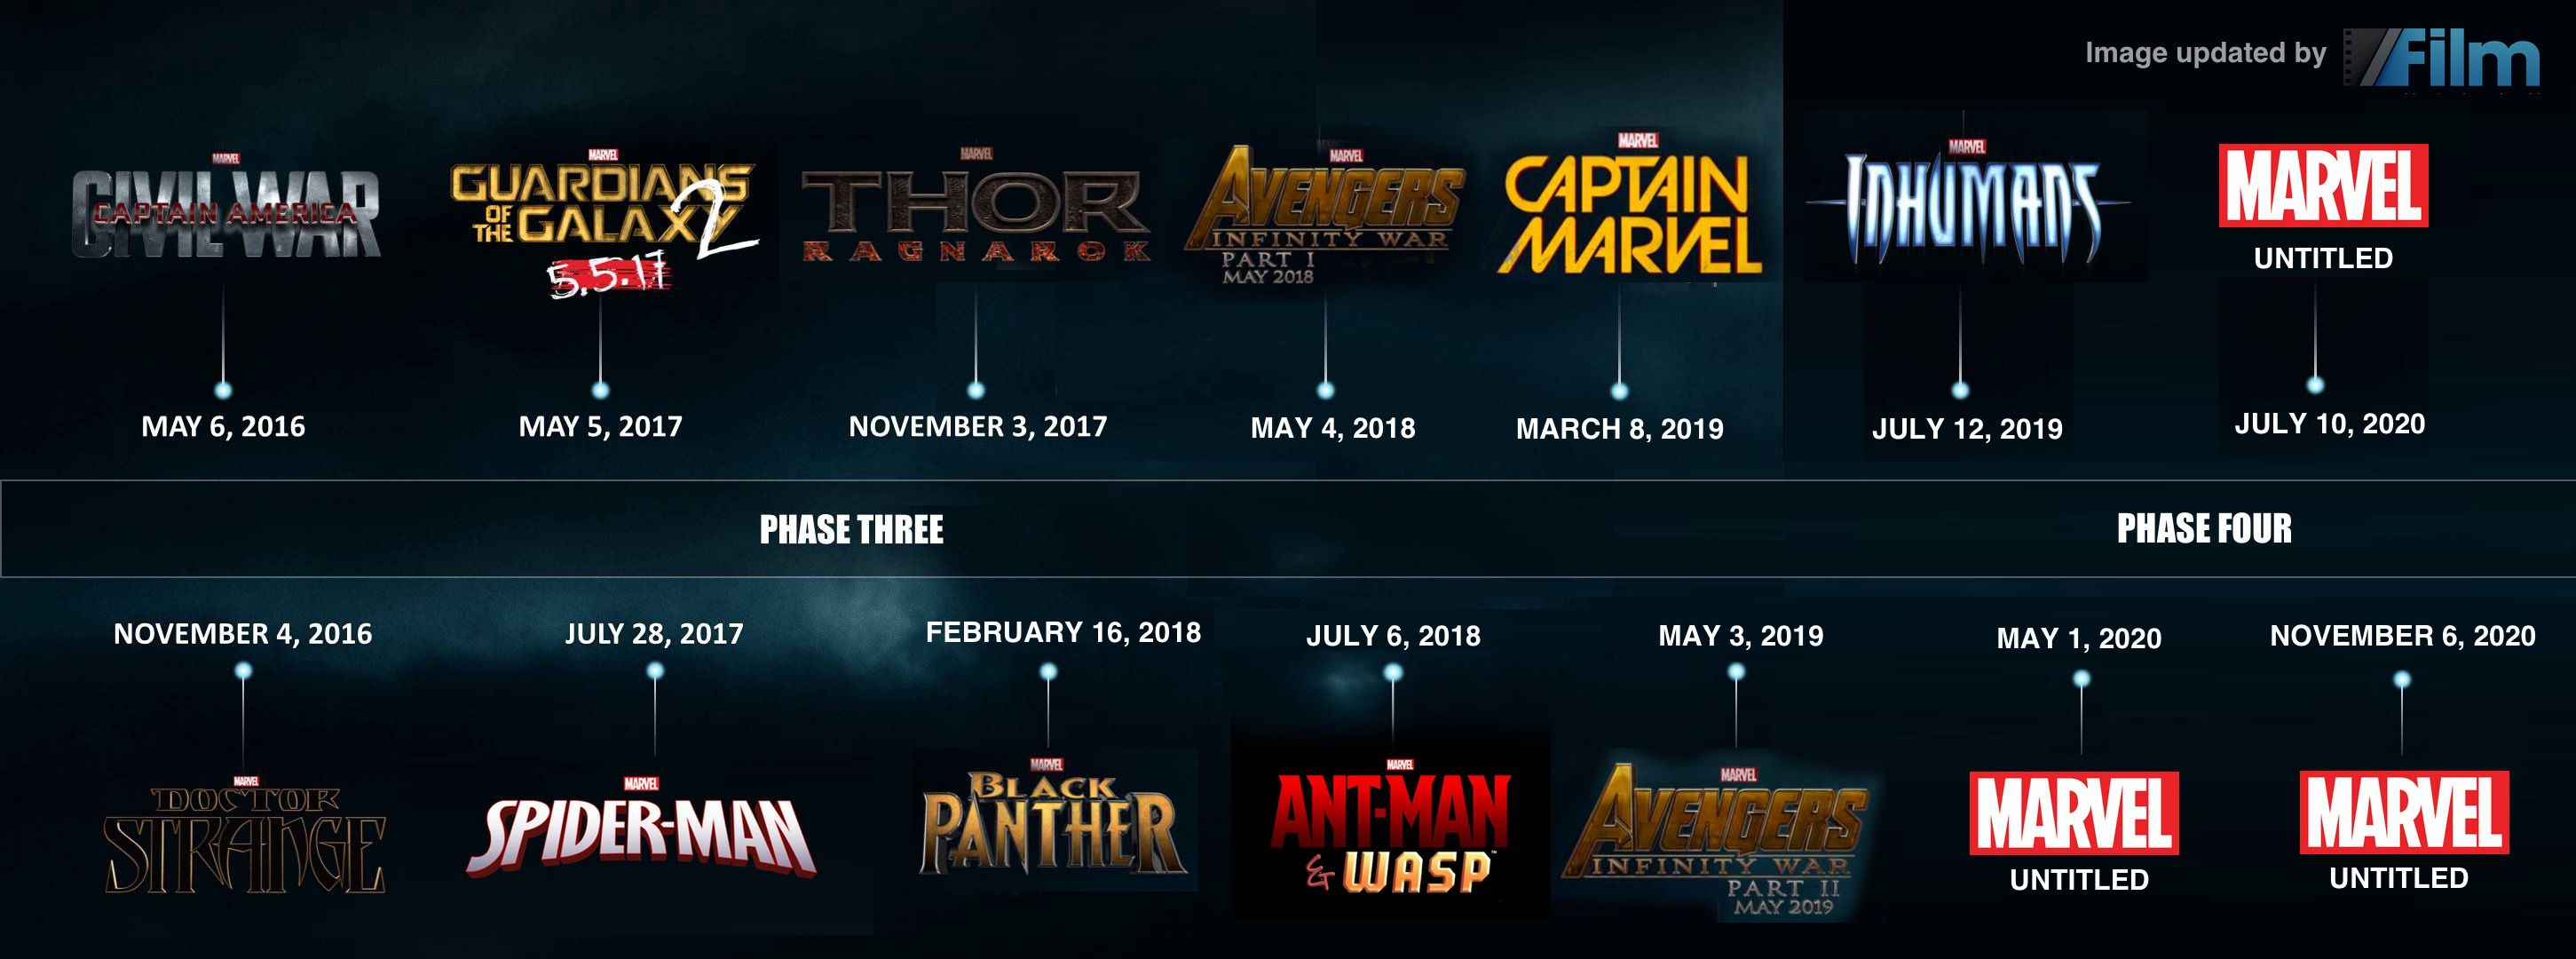 marvel film universe phase 4